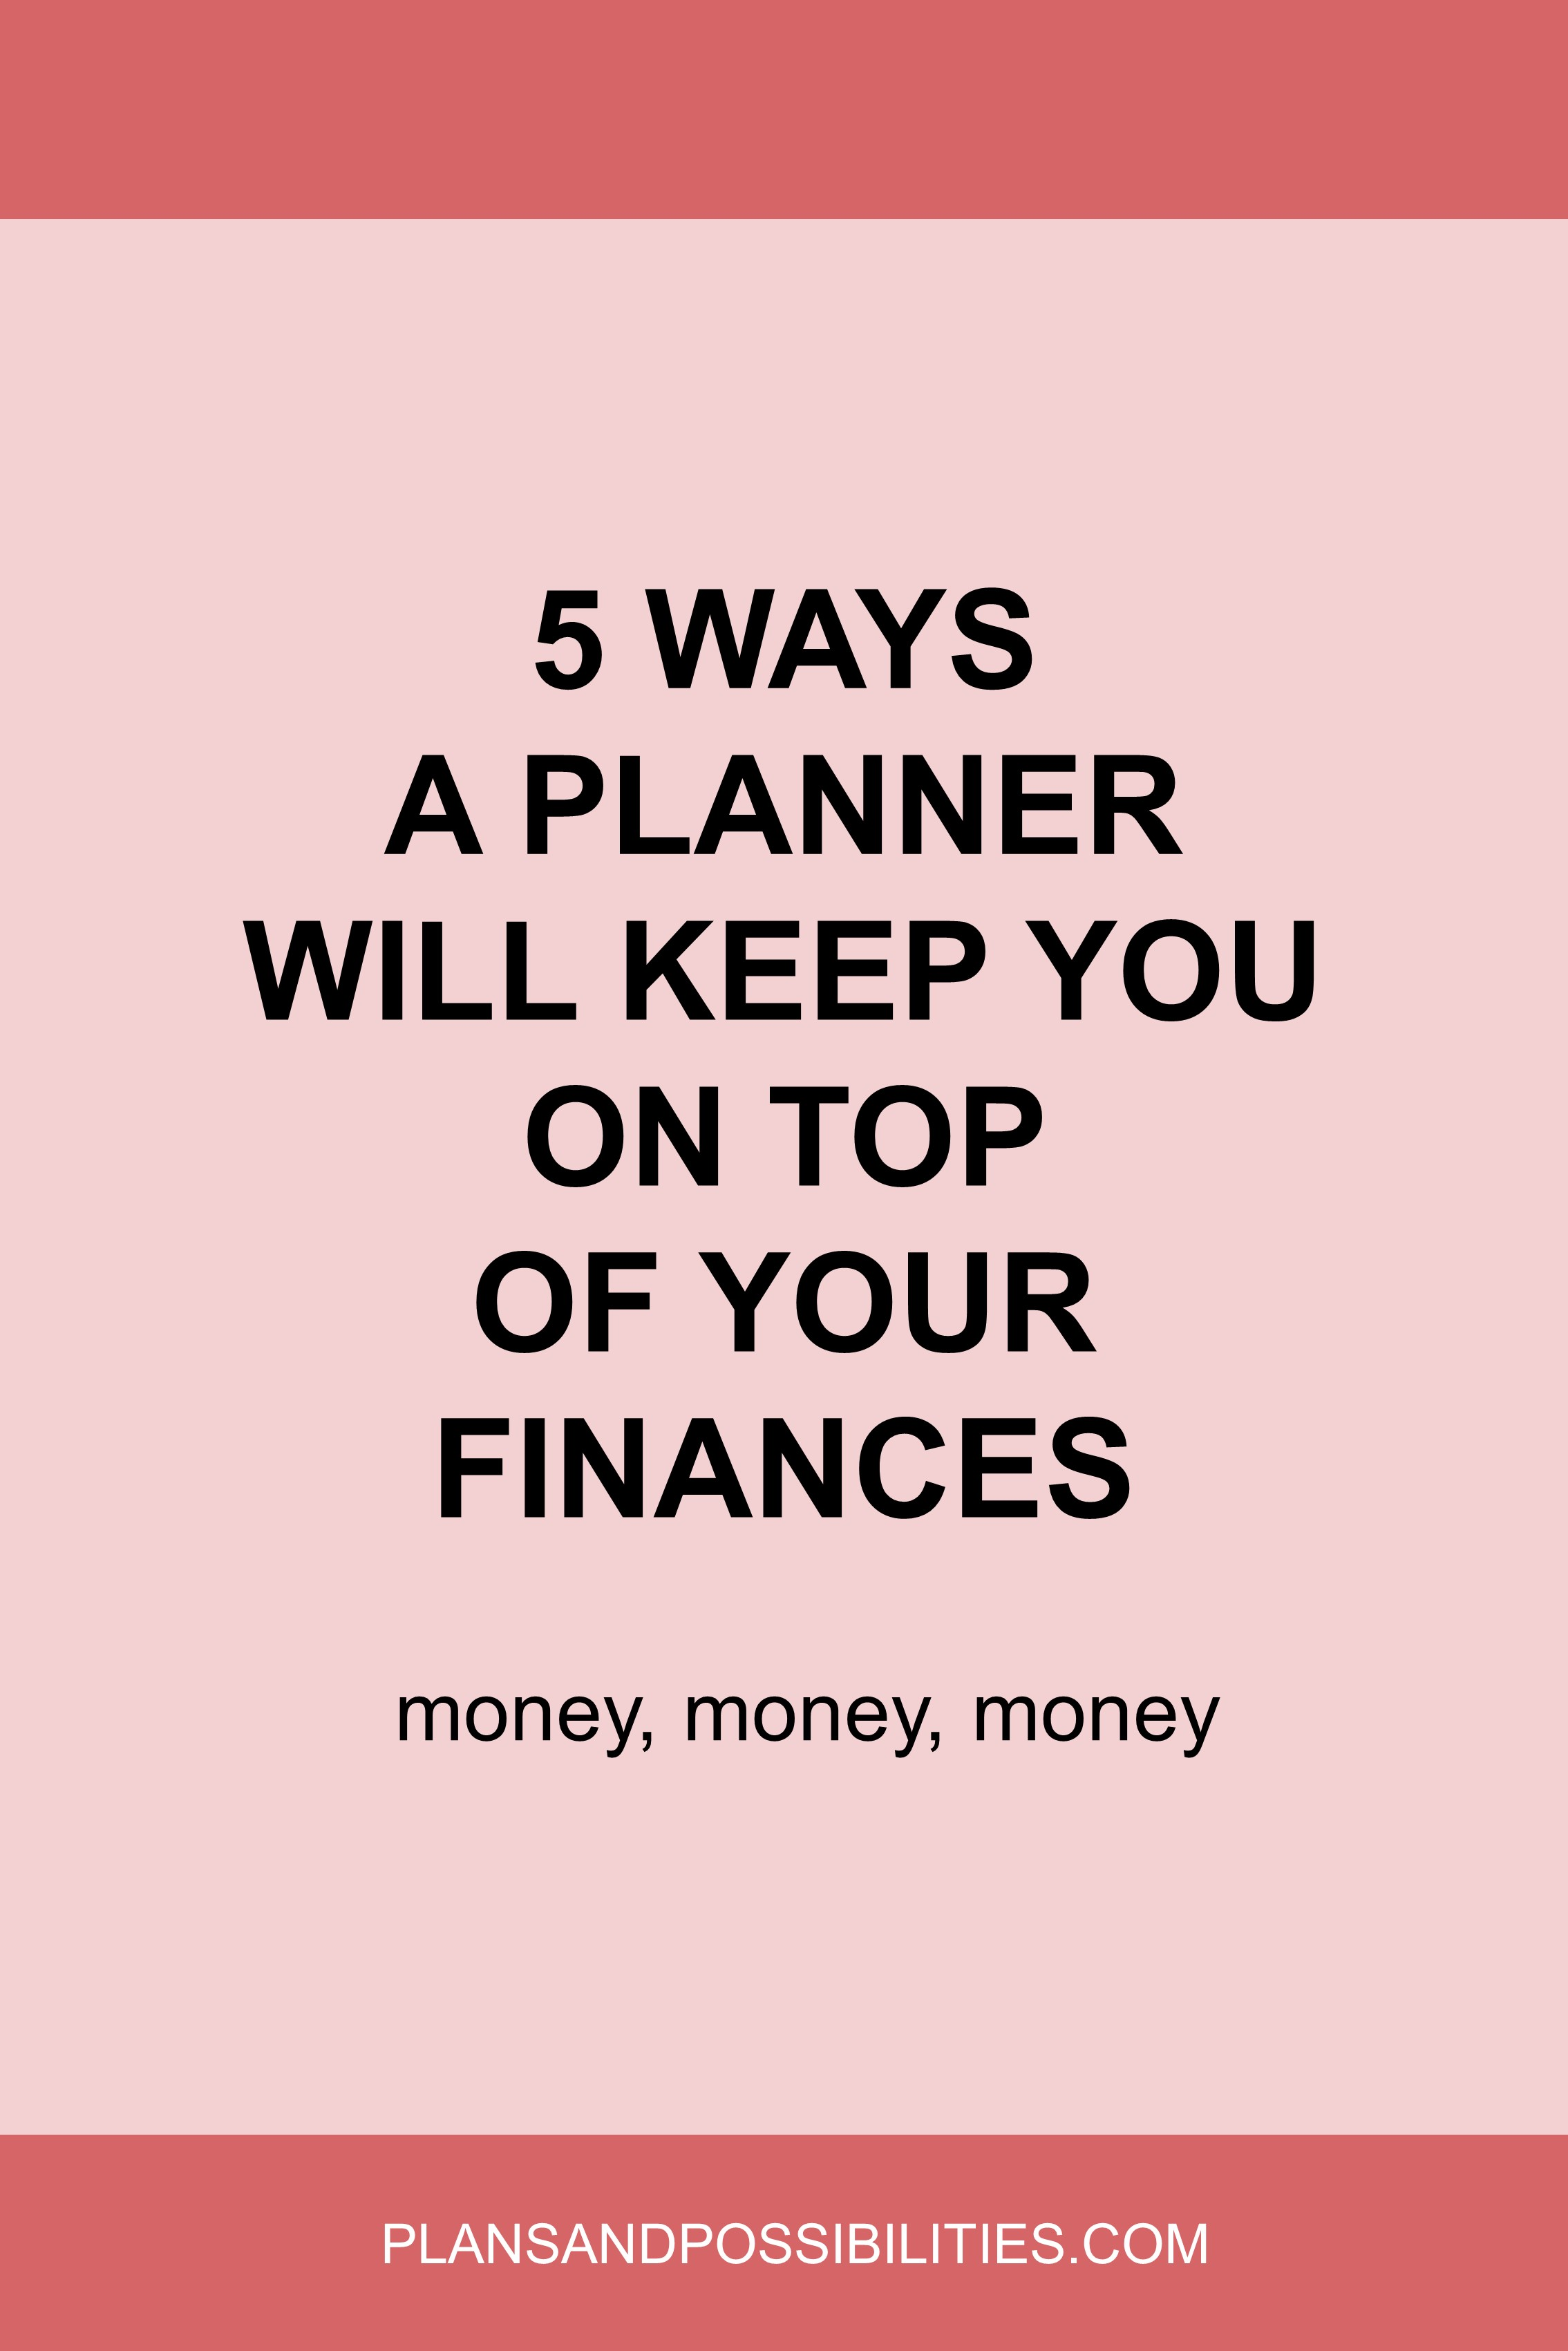 5 Ways A Planner Will Keep You On Top Of Your Finances.jpg